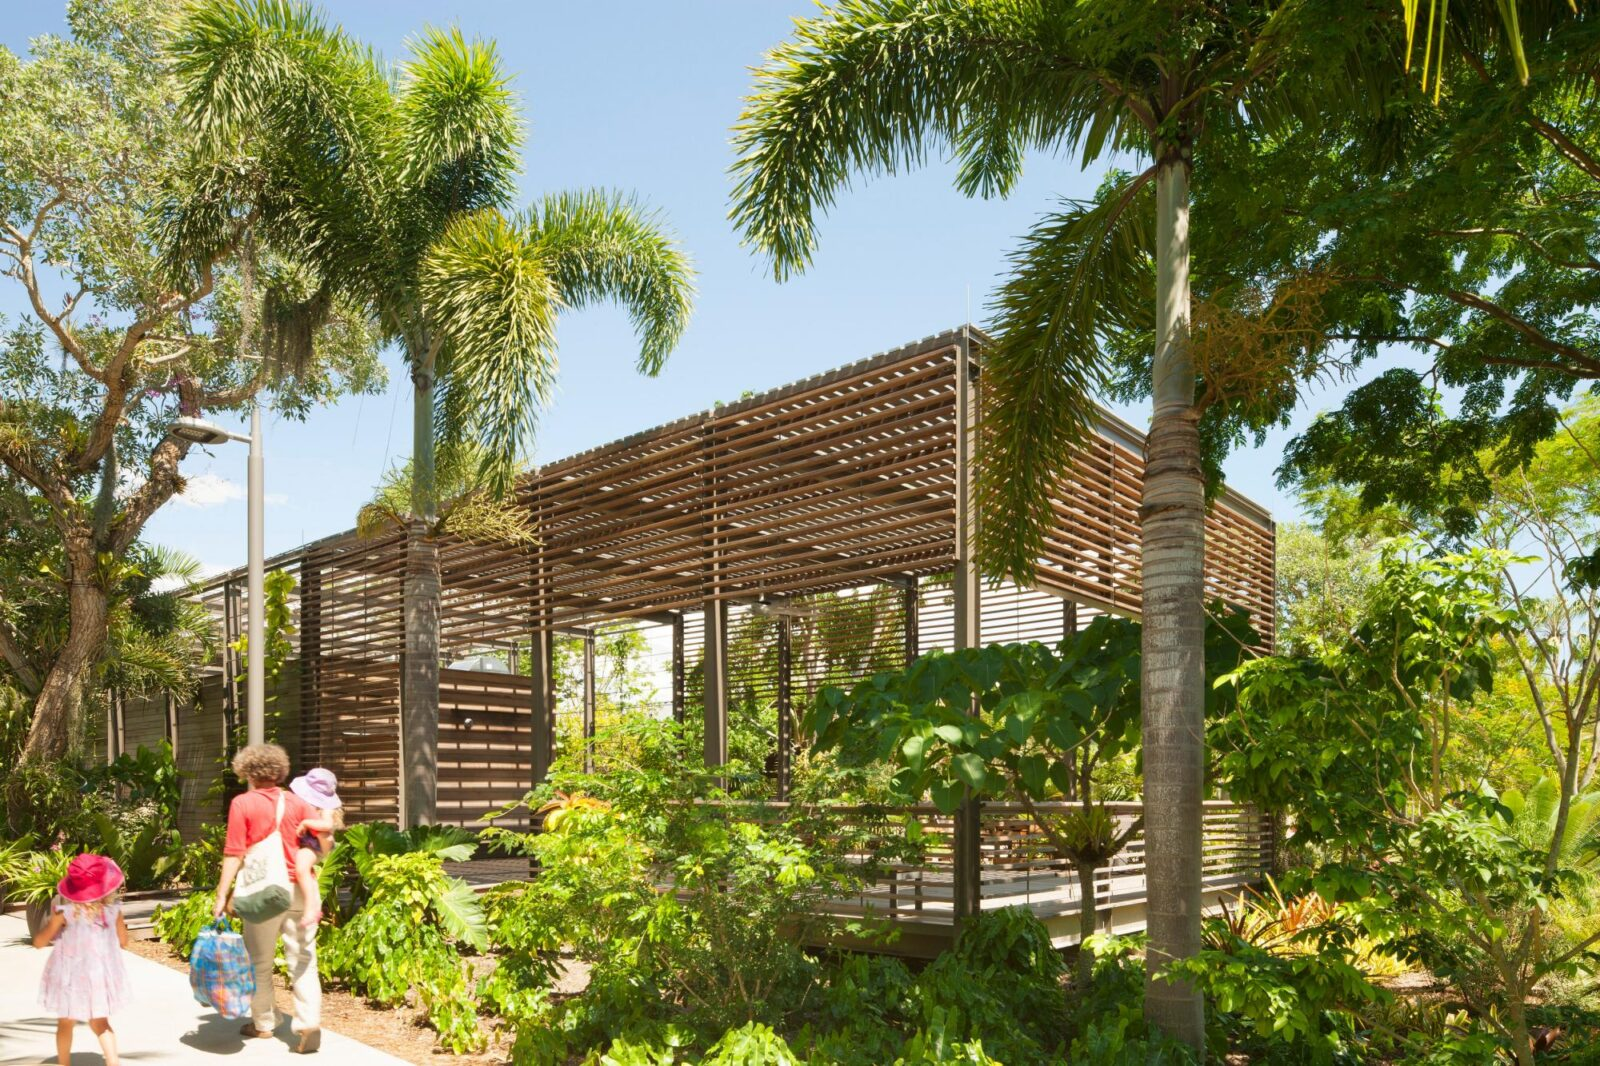 Naples botanical garden visitor center